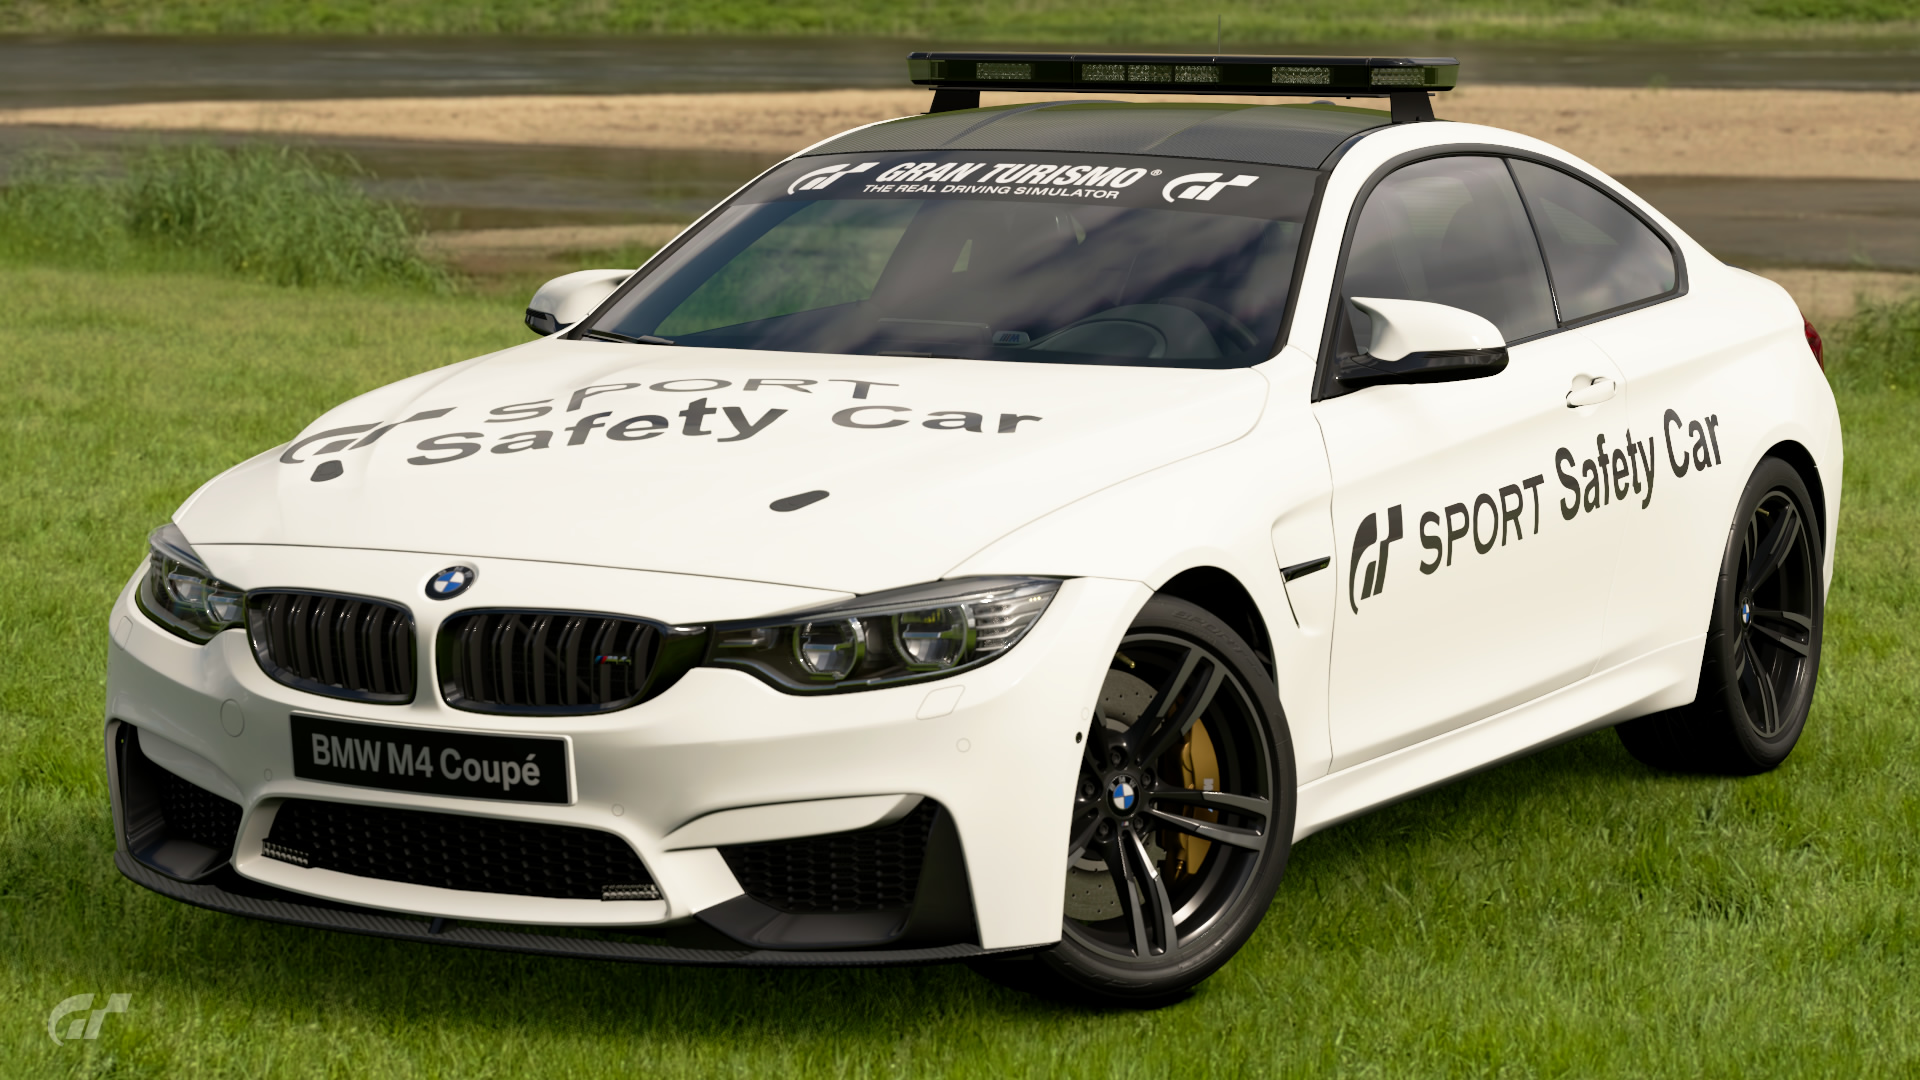 bmw m4 safety car gran turismo wiki fandom powered by wikia. Black Bedroom Furniture Sets. Home Design Ideas